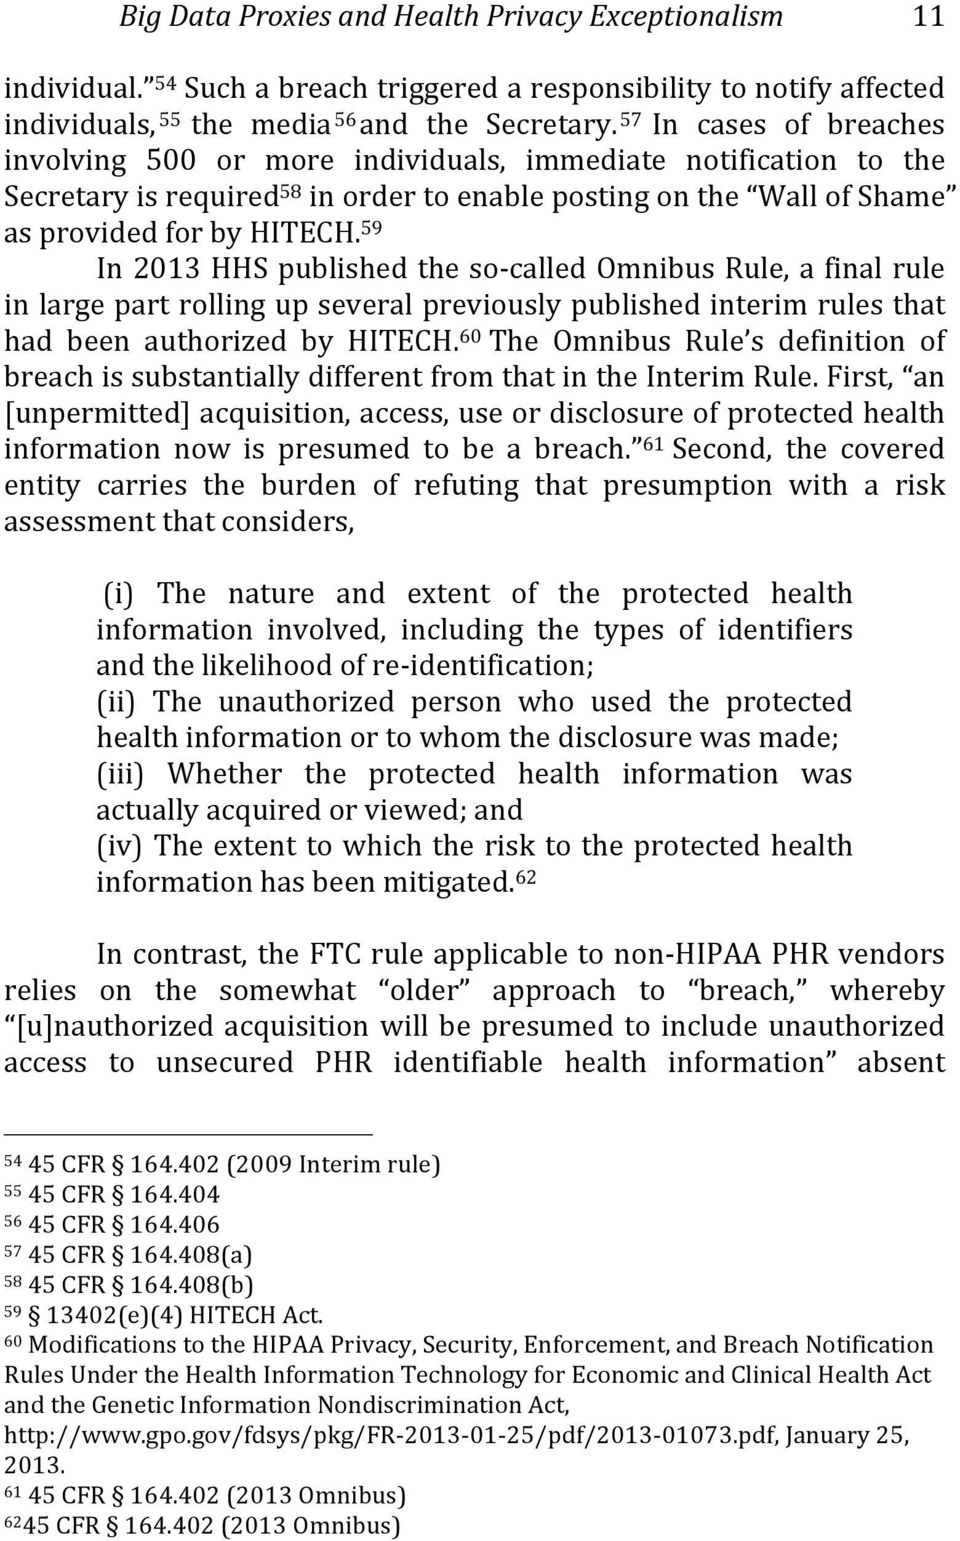 59 In 2013 HHS published the so- called Omnibus Rule, a final rule in large part rolling up several previously published interim rules that had been authorized by HITECH.